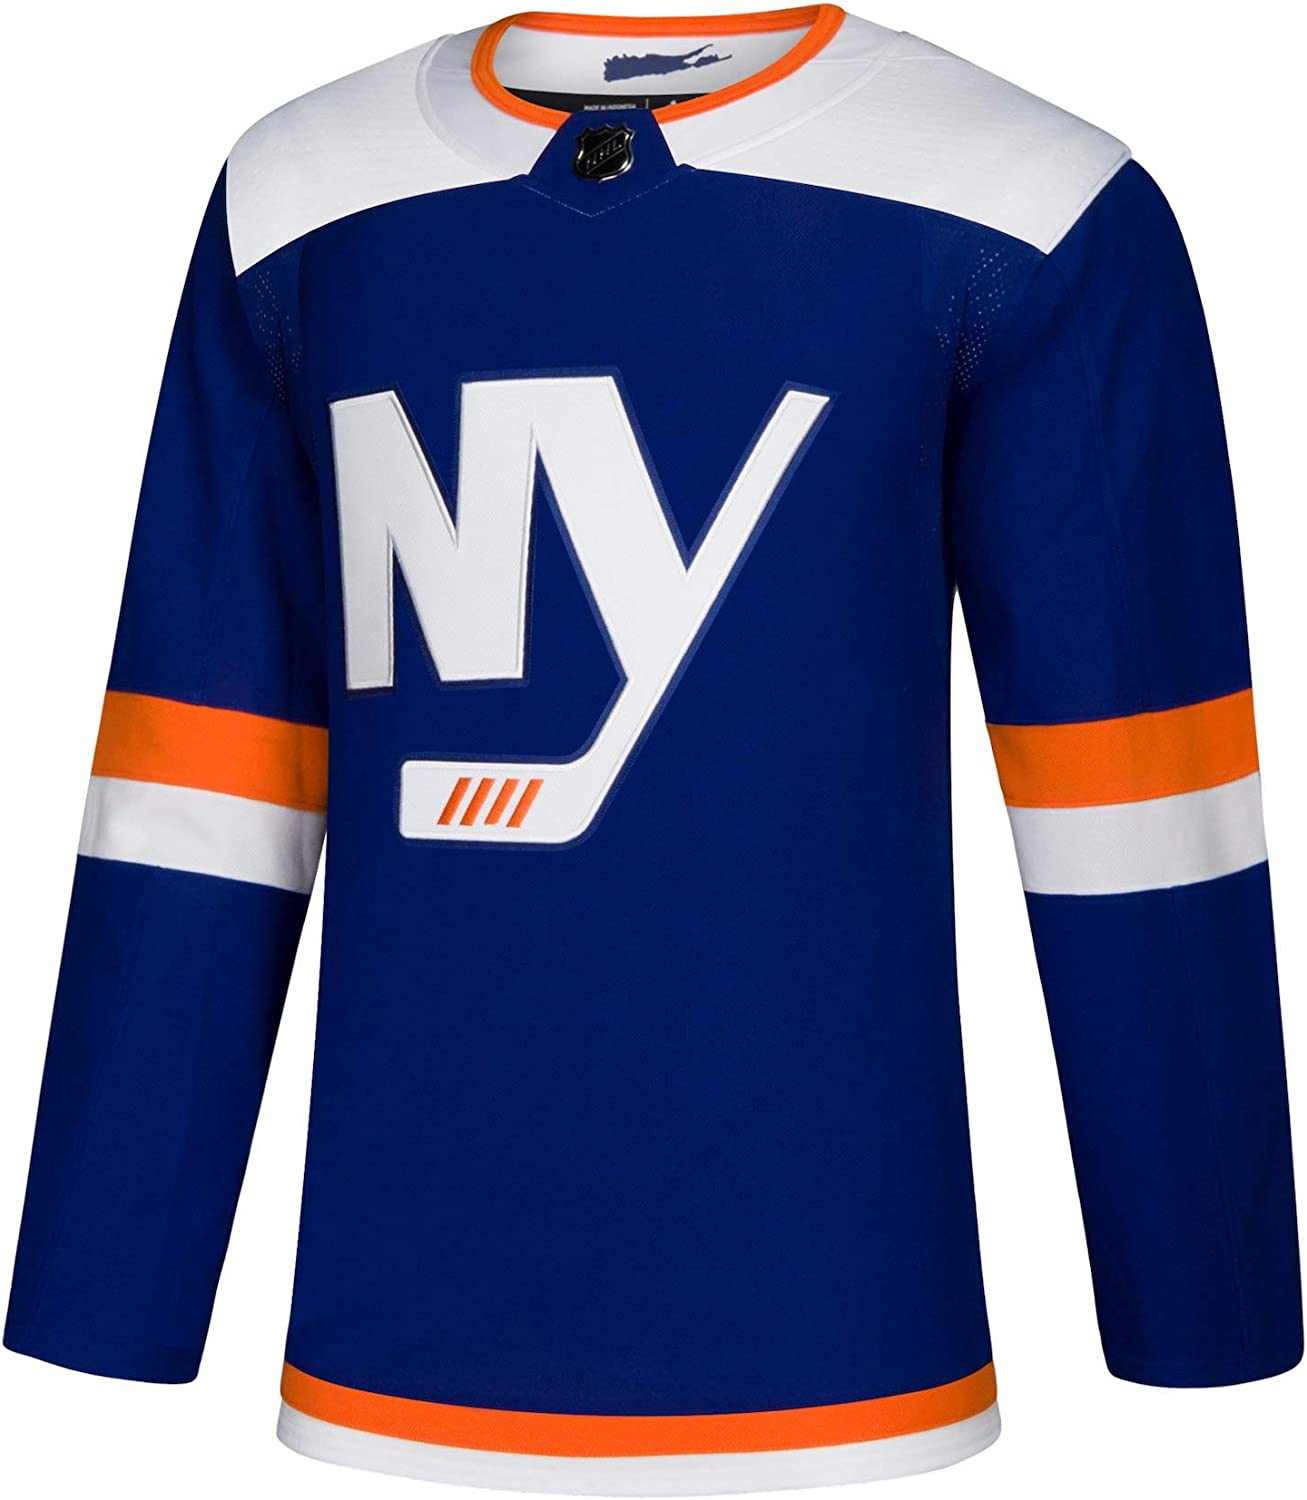 alternate hockey jerseys